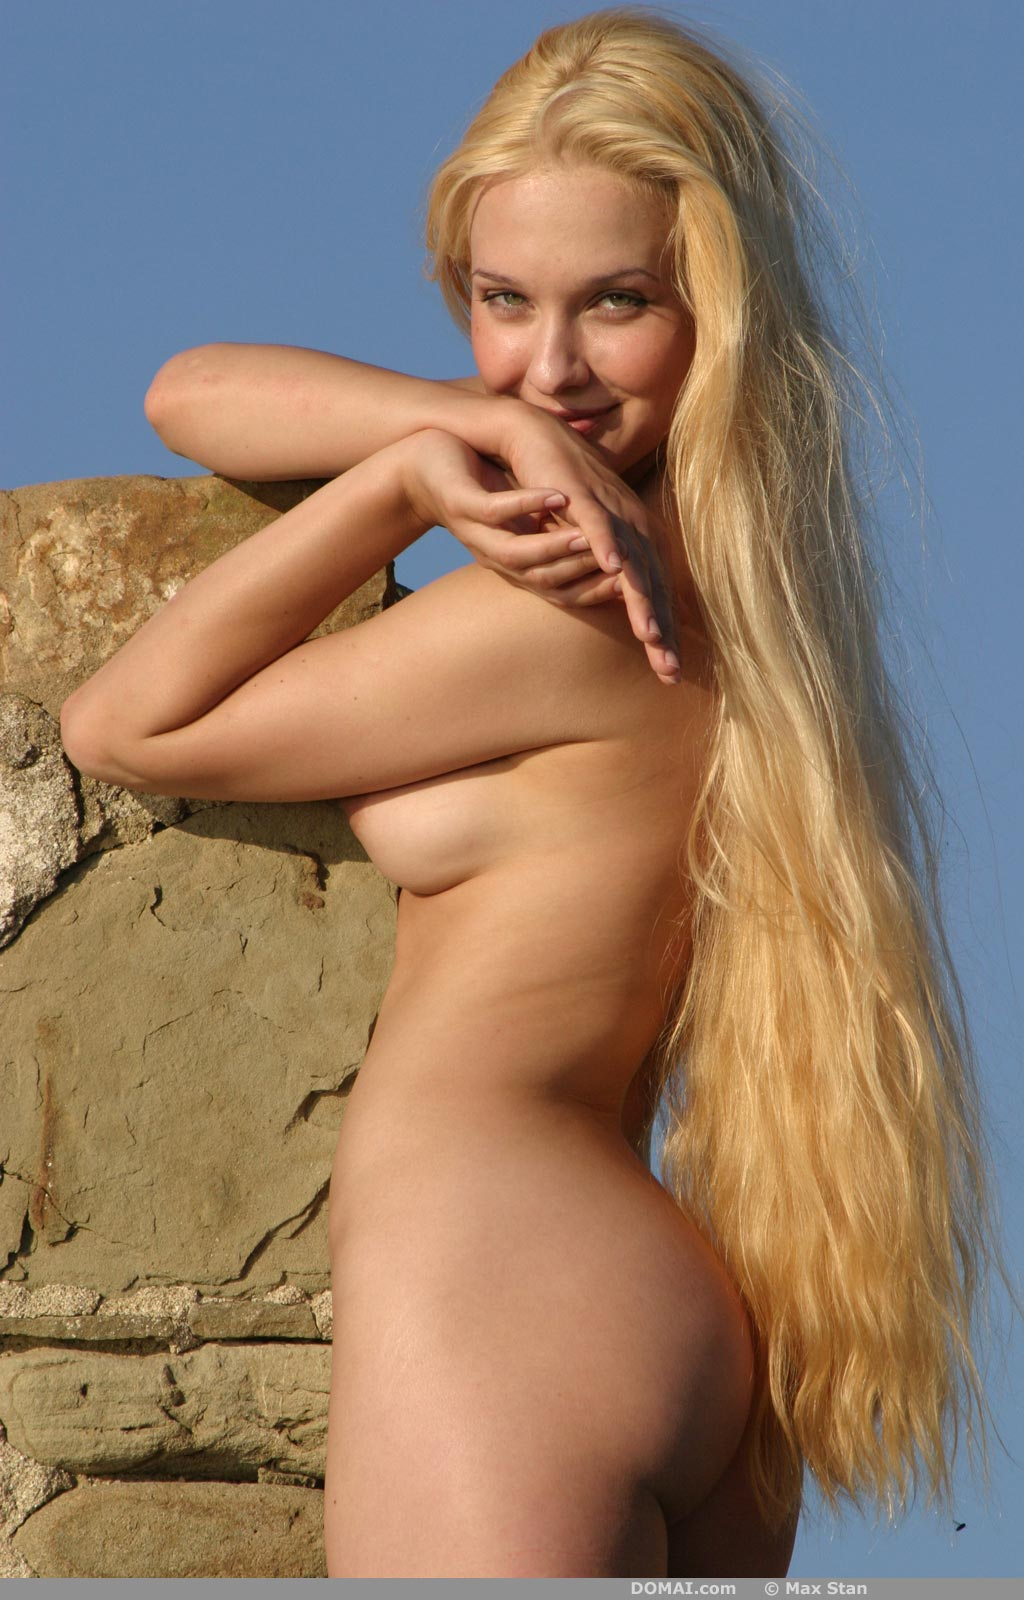 naked woman with long hair